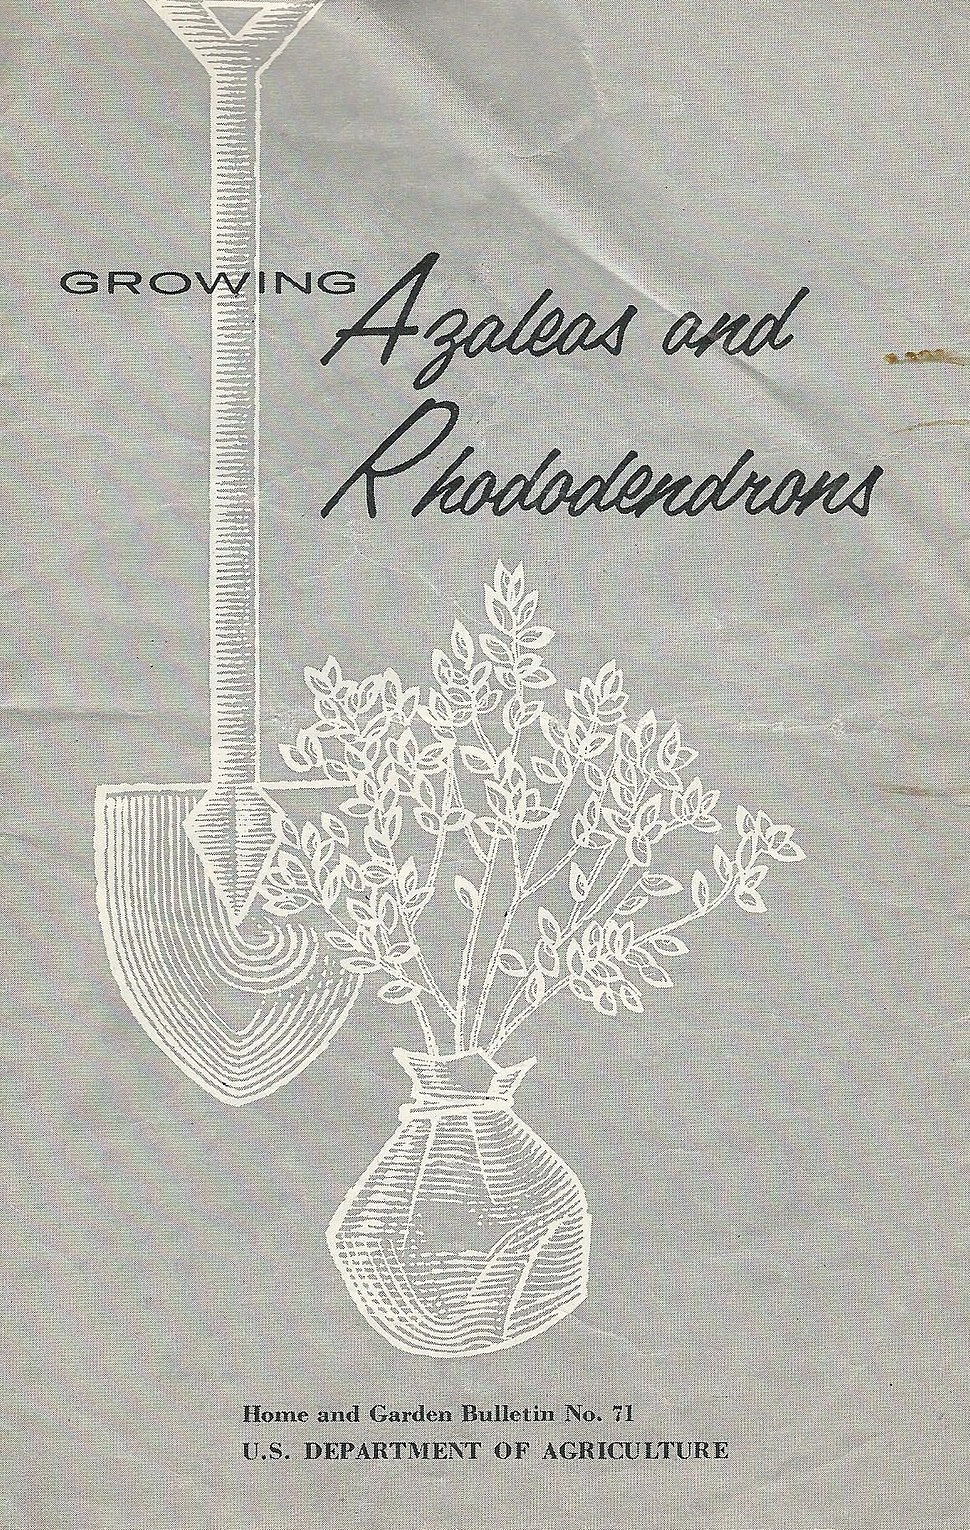 Dept Agriculture azaleas and rhododendrons publication